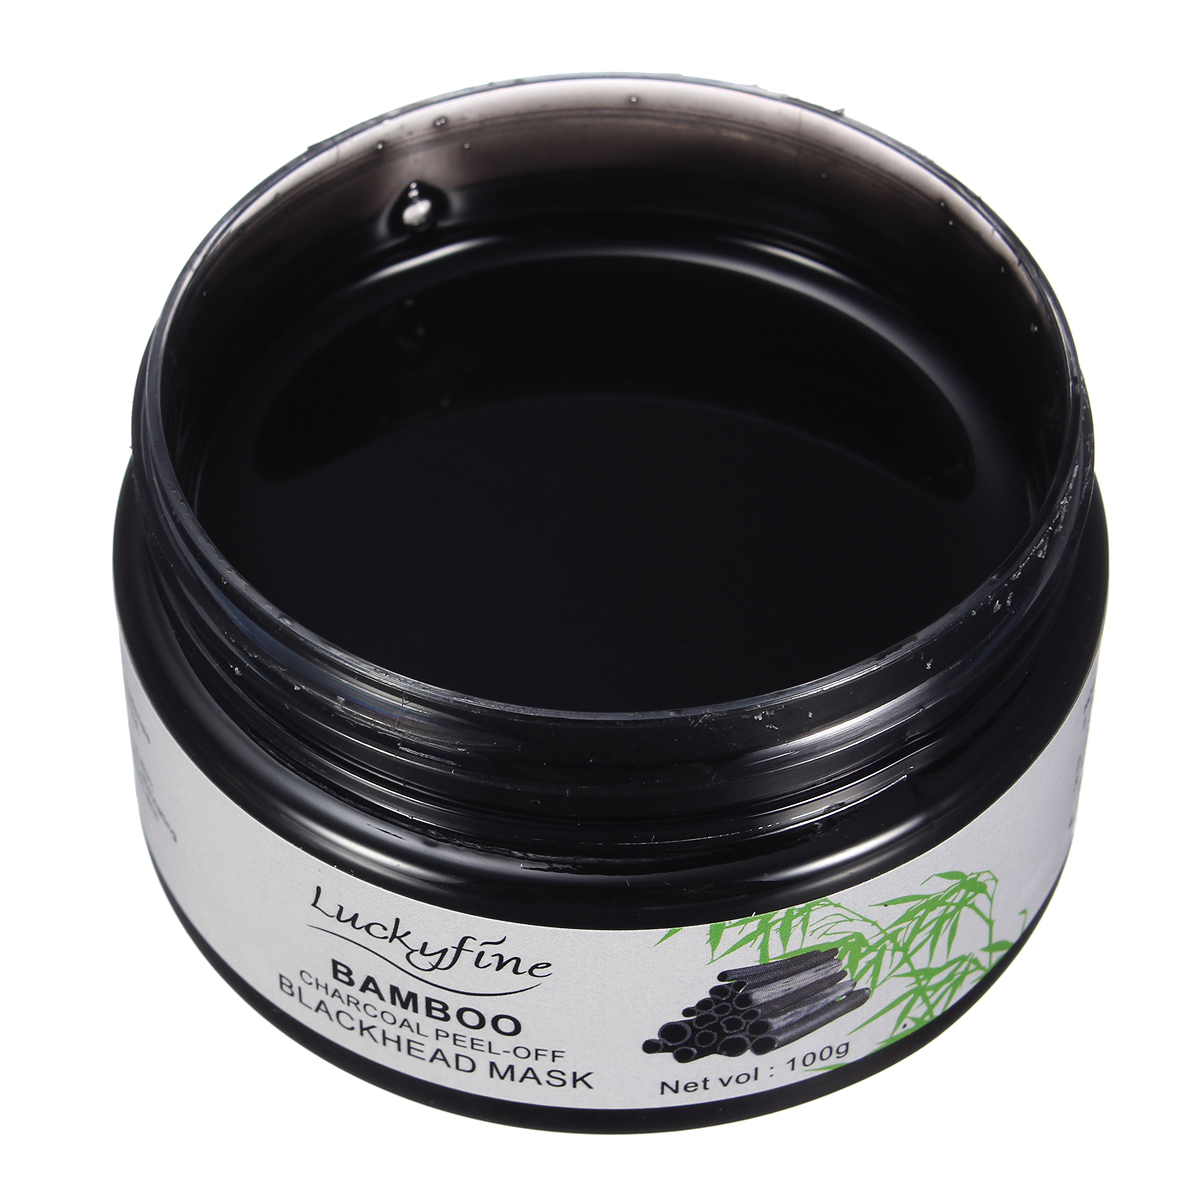 LuckyFine Blackhead Mask Bamboo Charcoal Peel-off Deep Cleaning Mask Resist Mirror and Spoon